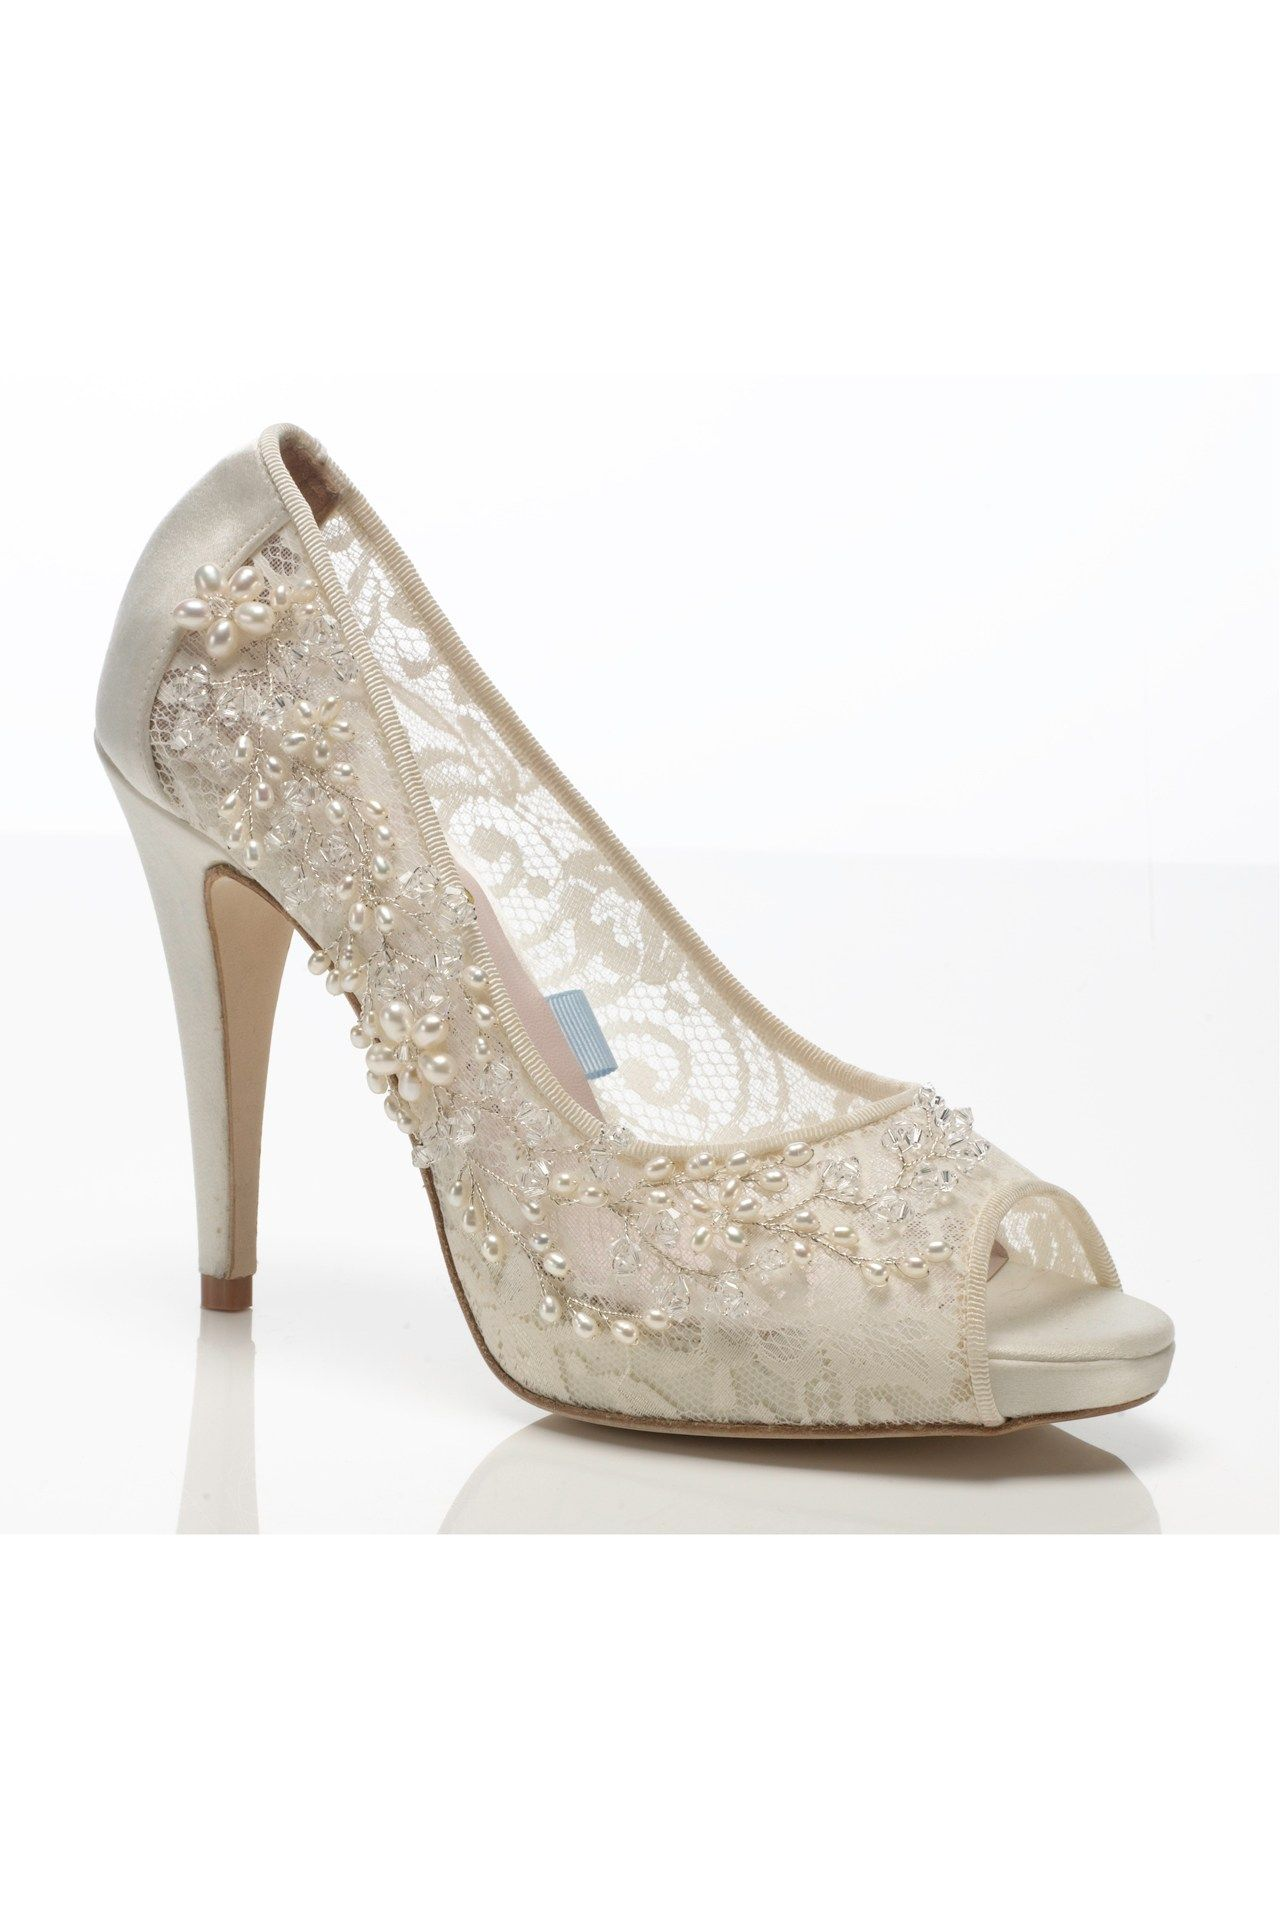 Wedding Ideas Planning Inspiration Bridal Shoes Colorful Wedding Shoes Women Shoes